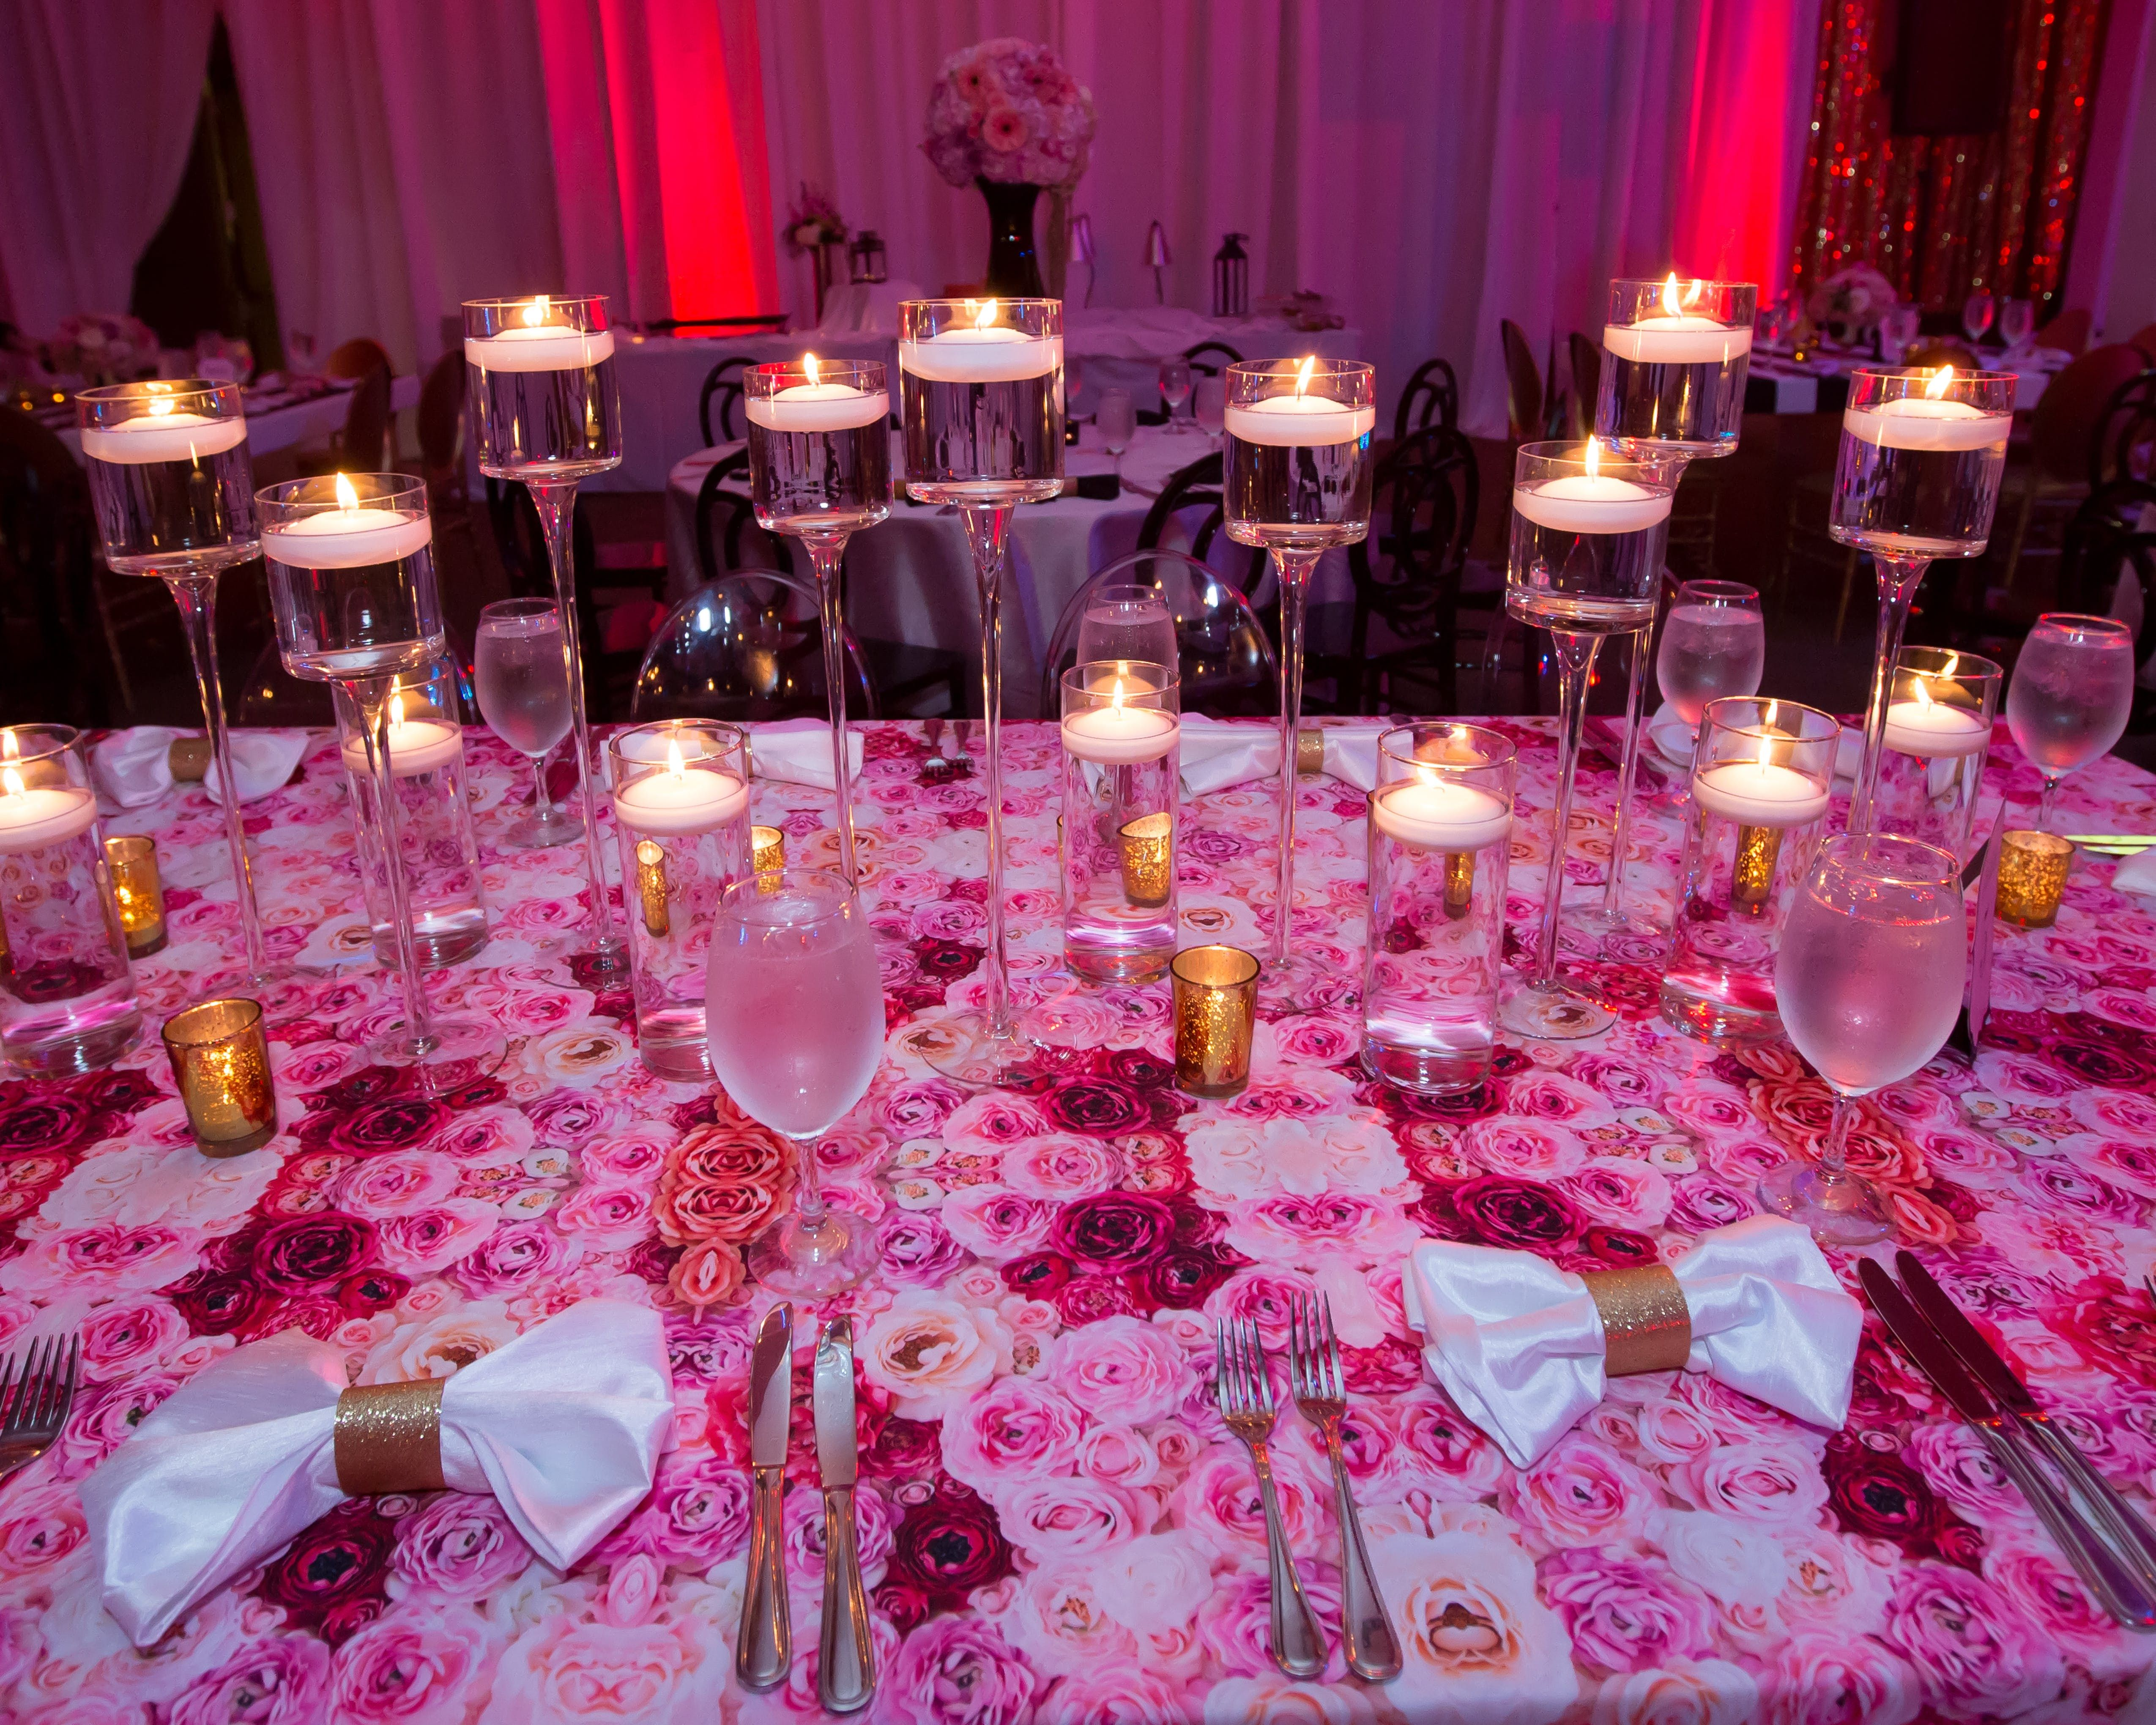 Black Pink Mod Bat Mitzvah Party Rentals And Decor By Gilded Group Decor Miami Event Design Miami Event Decor Miam Gilded Group Decor Events In 2019